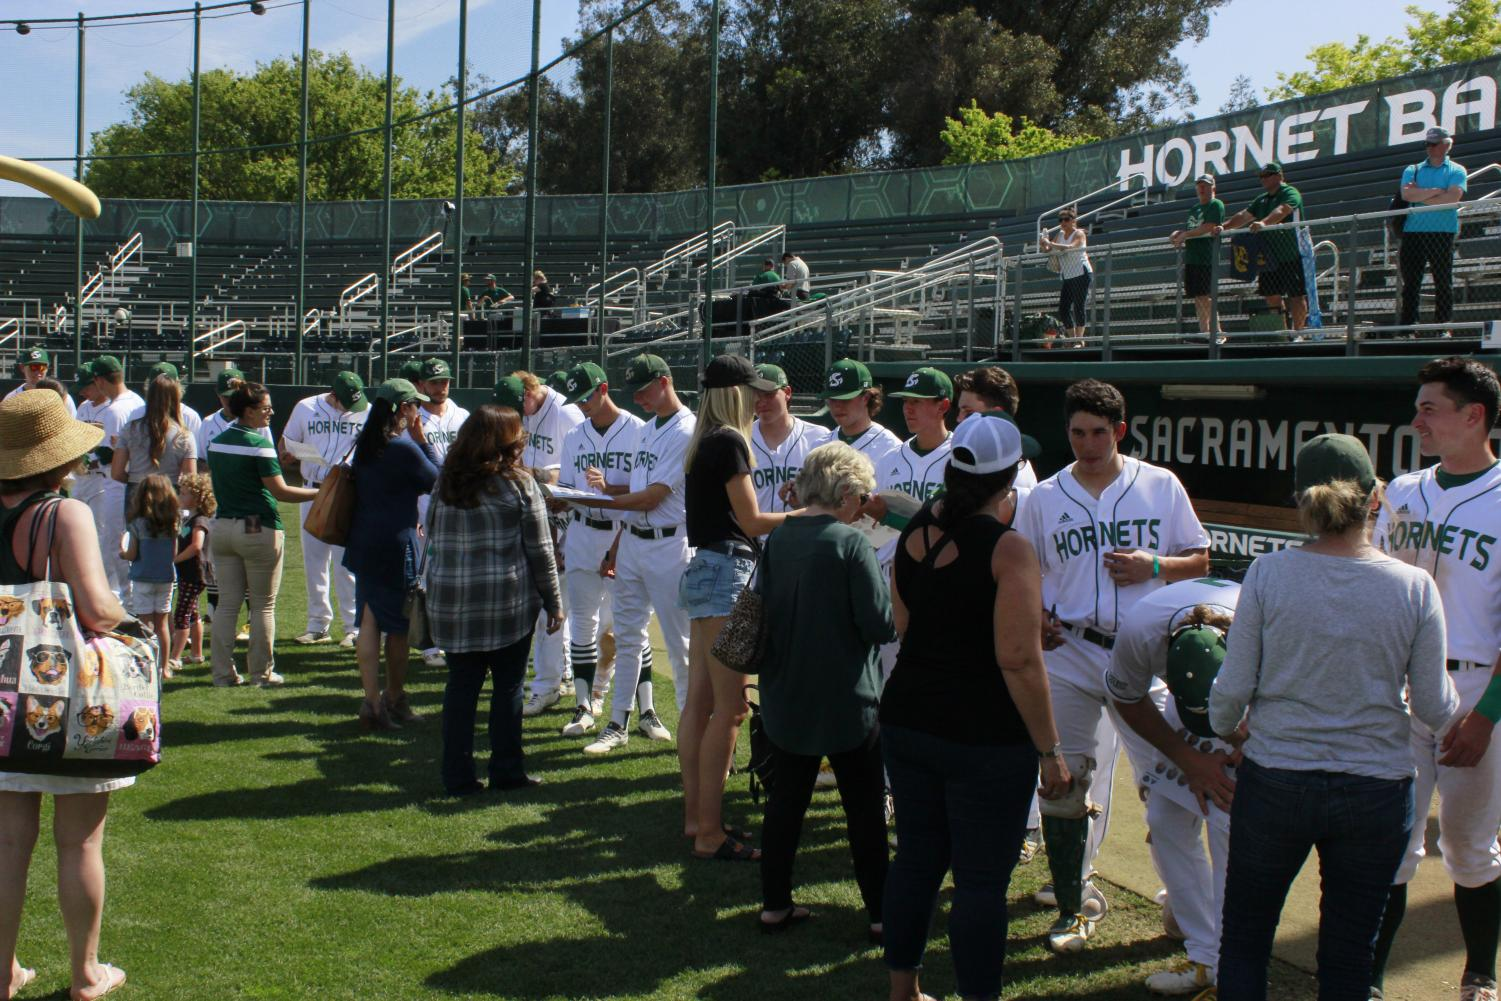 Members+of+the+Sac+State+baseball+team+sign+autographs+for+fans+following+a+5-4+win+Sunday+over+CSU+Bakersfield+at+John+Smith+Field.+The+Hornets+now+go+on+a+nine+game+road+trip+beginning+Tuesday+at+Santa+Clara.